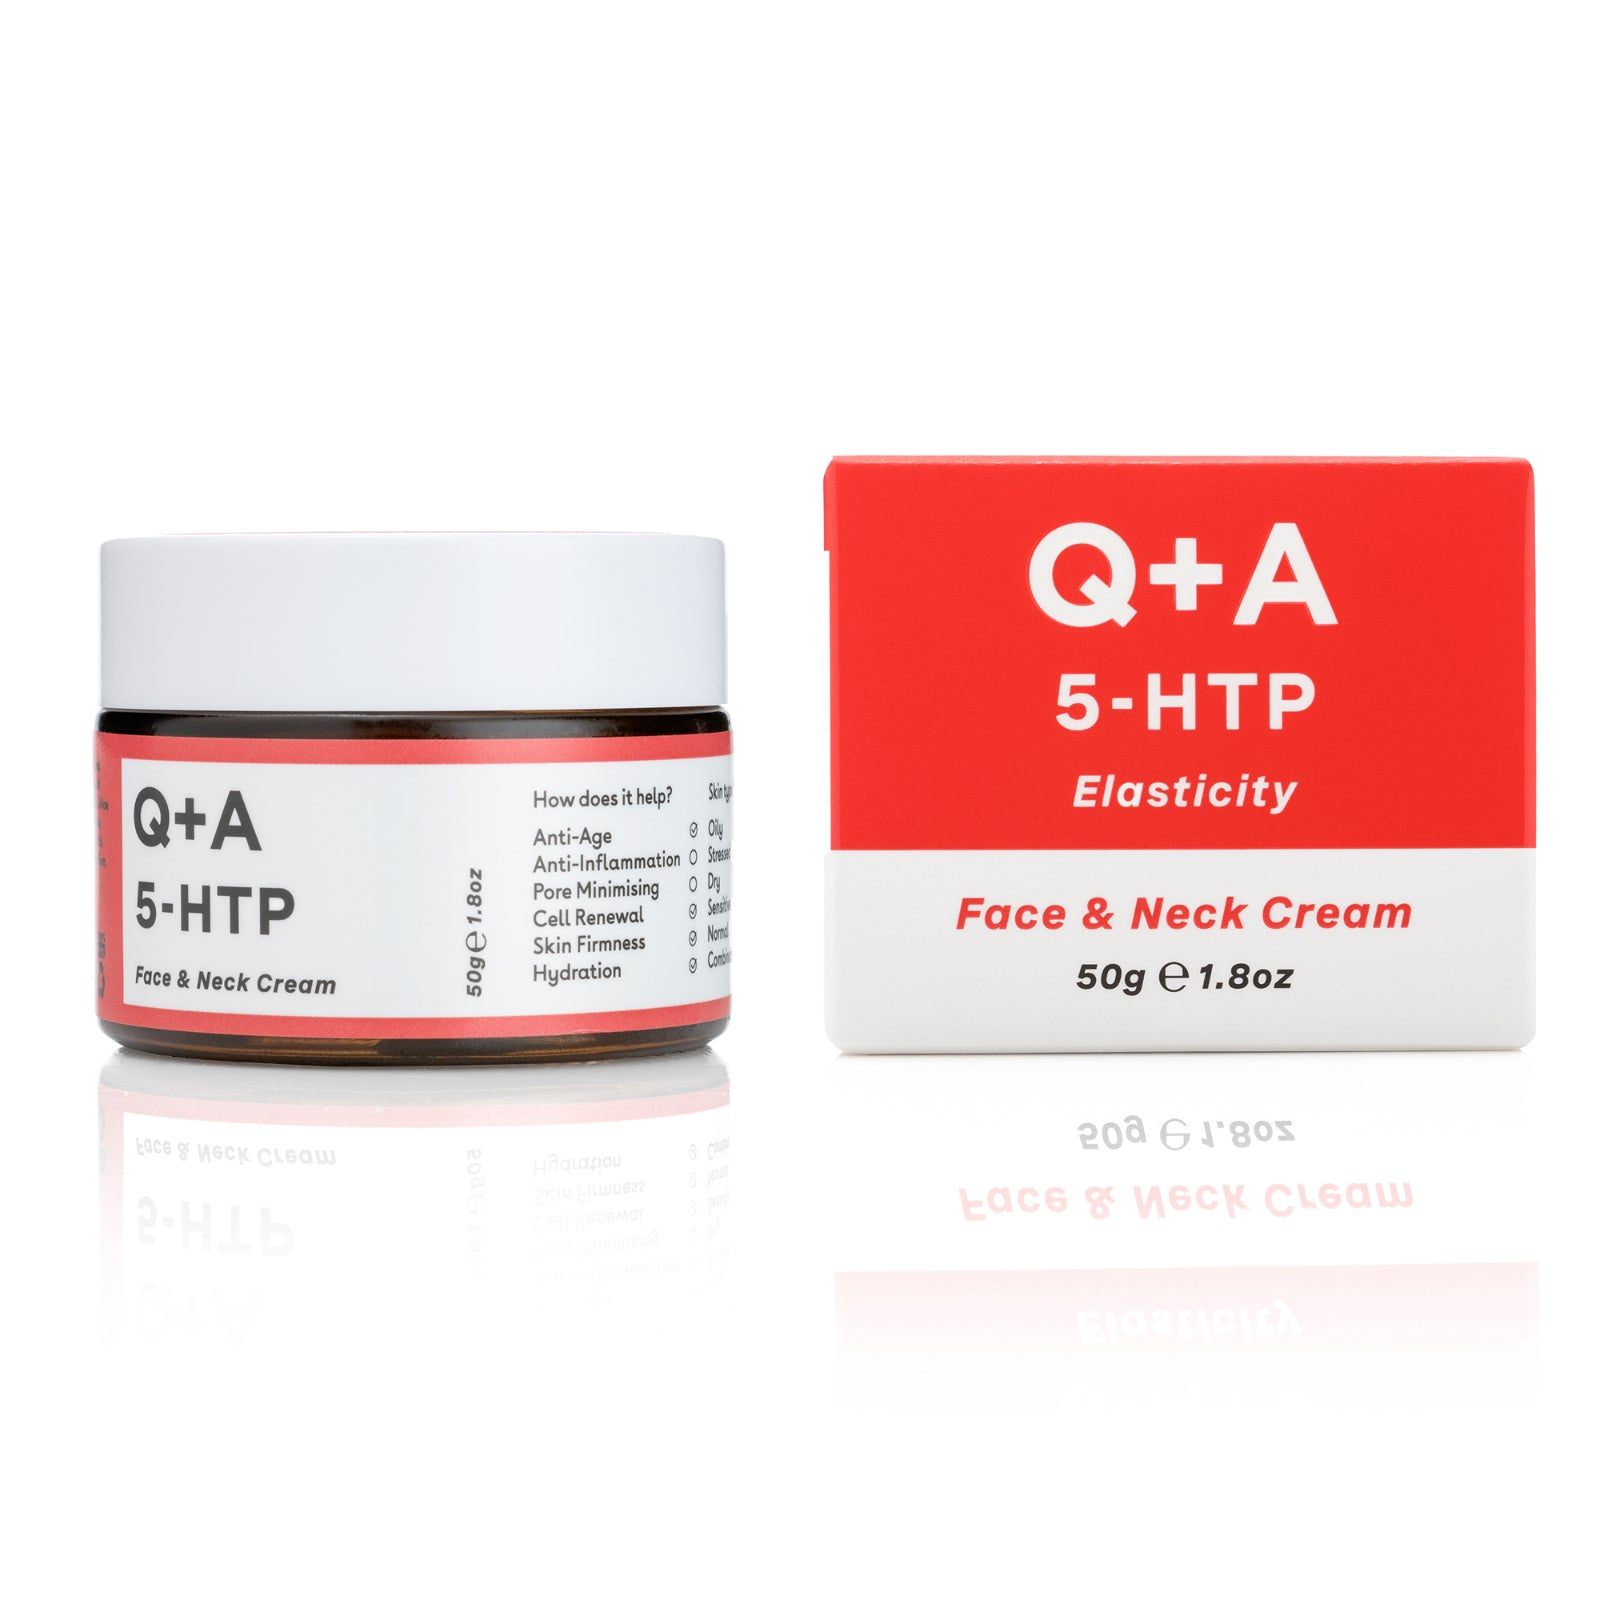 5-HTP Face & Neck Cream